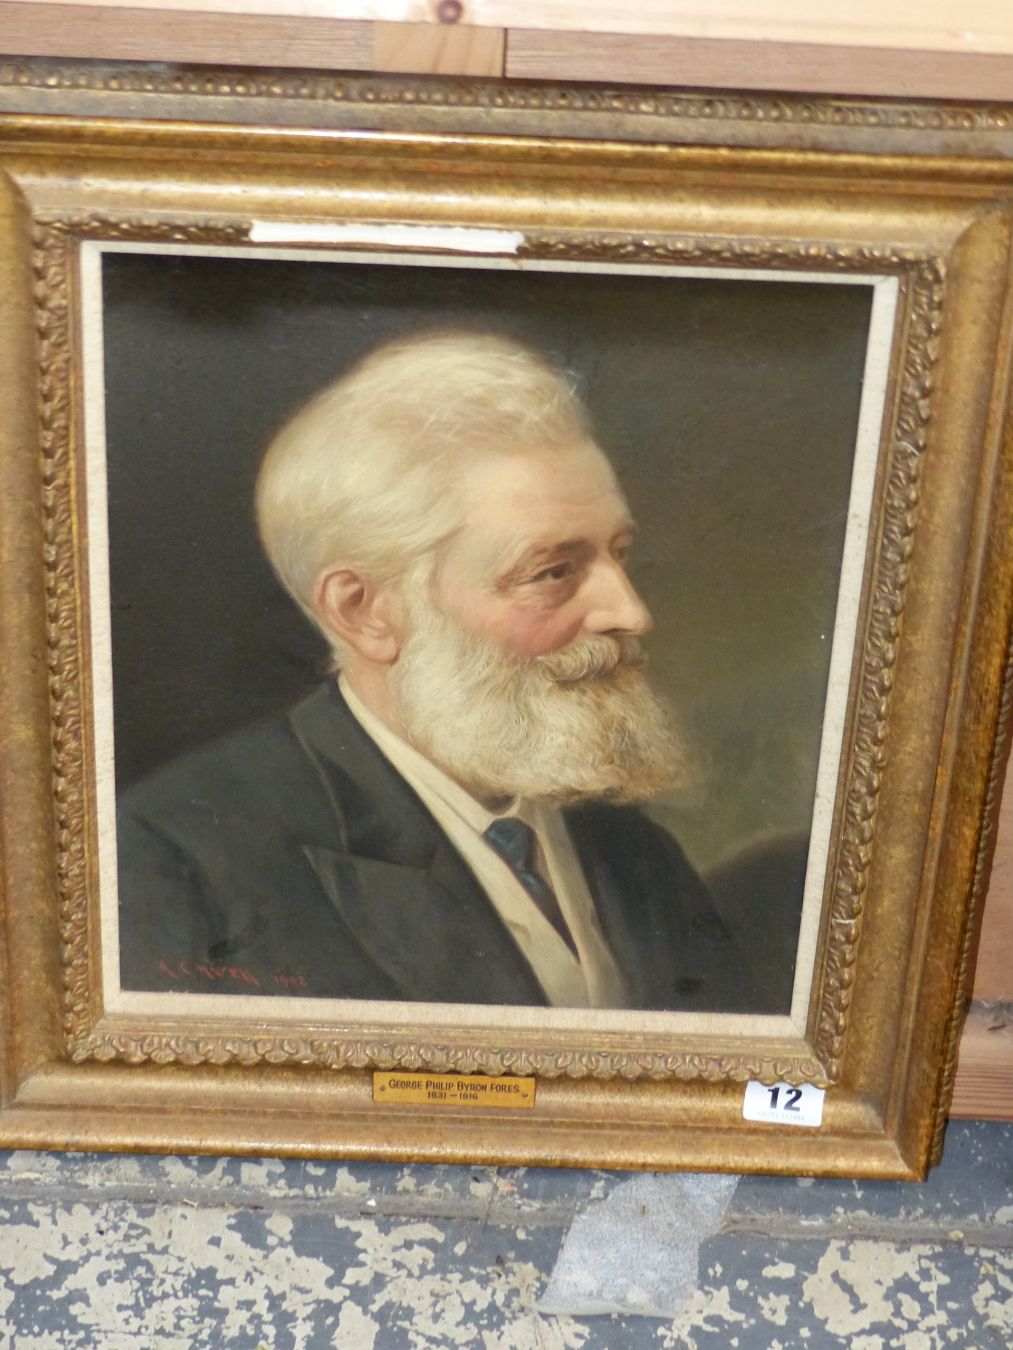 A, C. HAVELL (1855-1928) PORTRAIT OF GEORGE PHILIP BYRON FORES 1831-1916. SIGNED OIL ON CANVAS. 33 X - Image 2 of 3